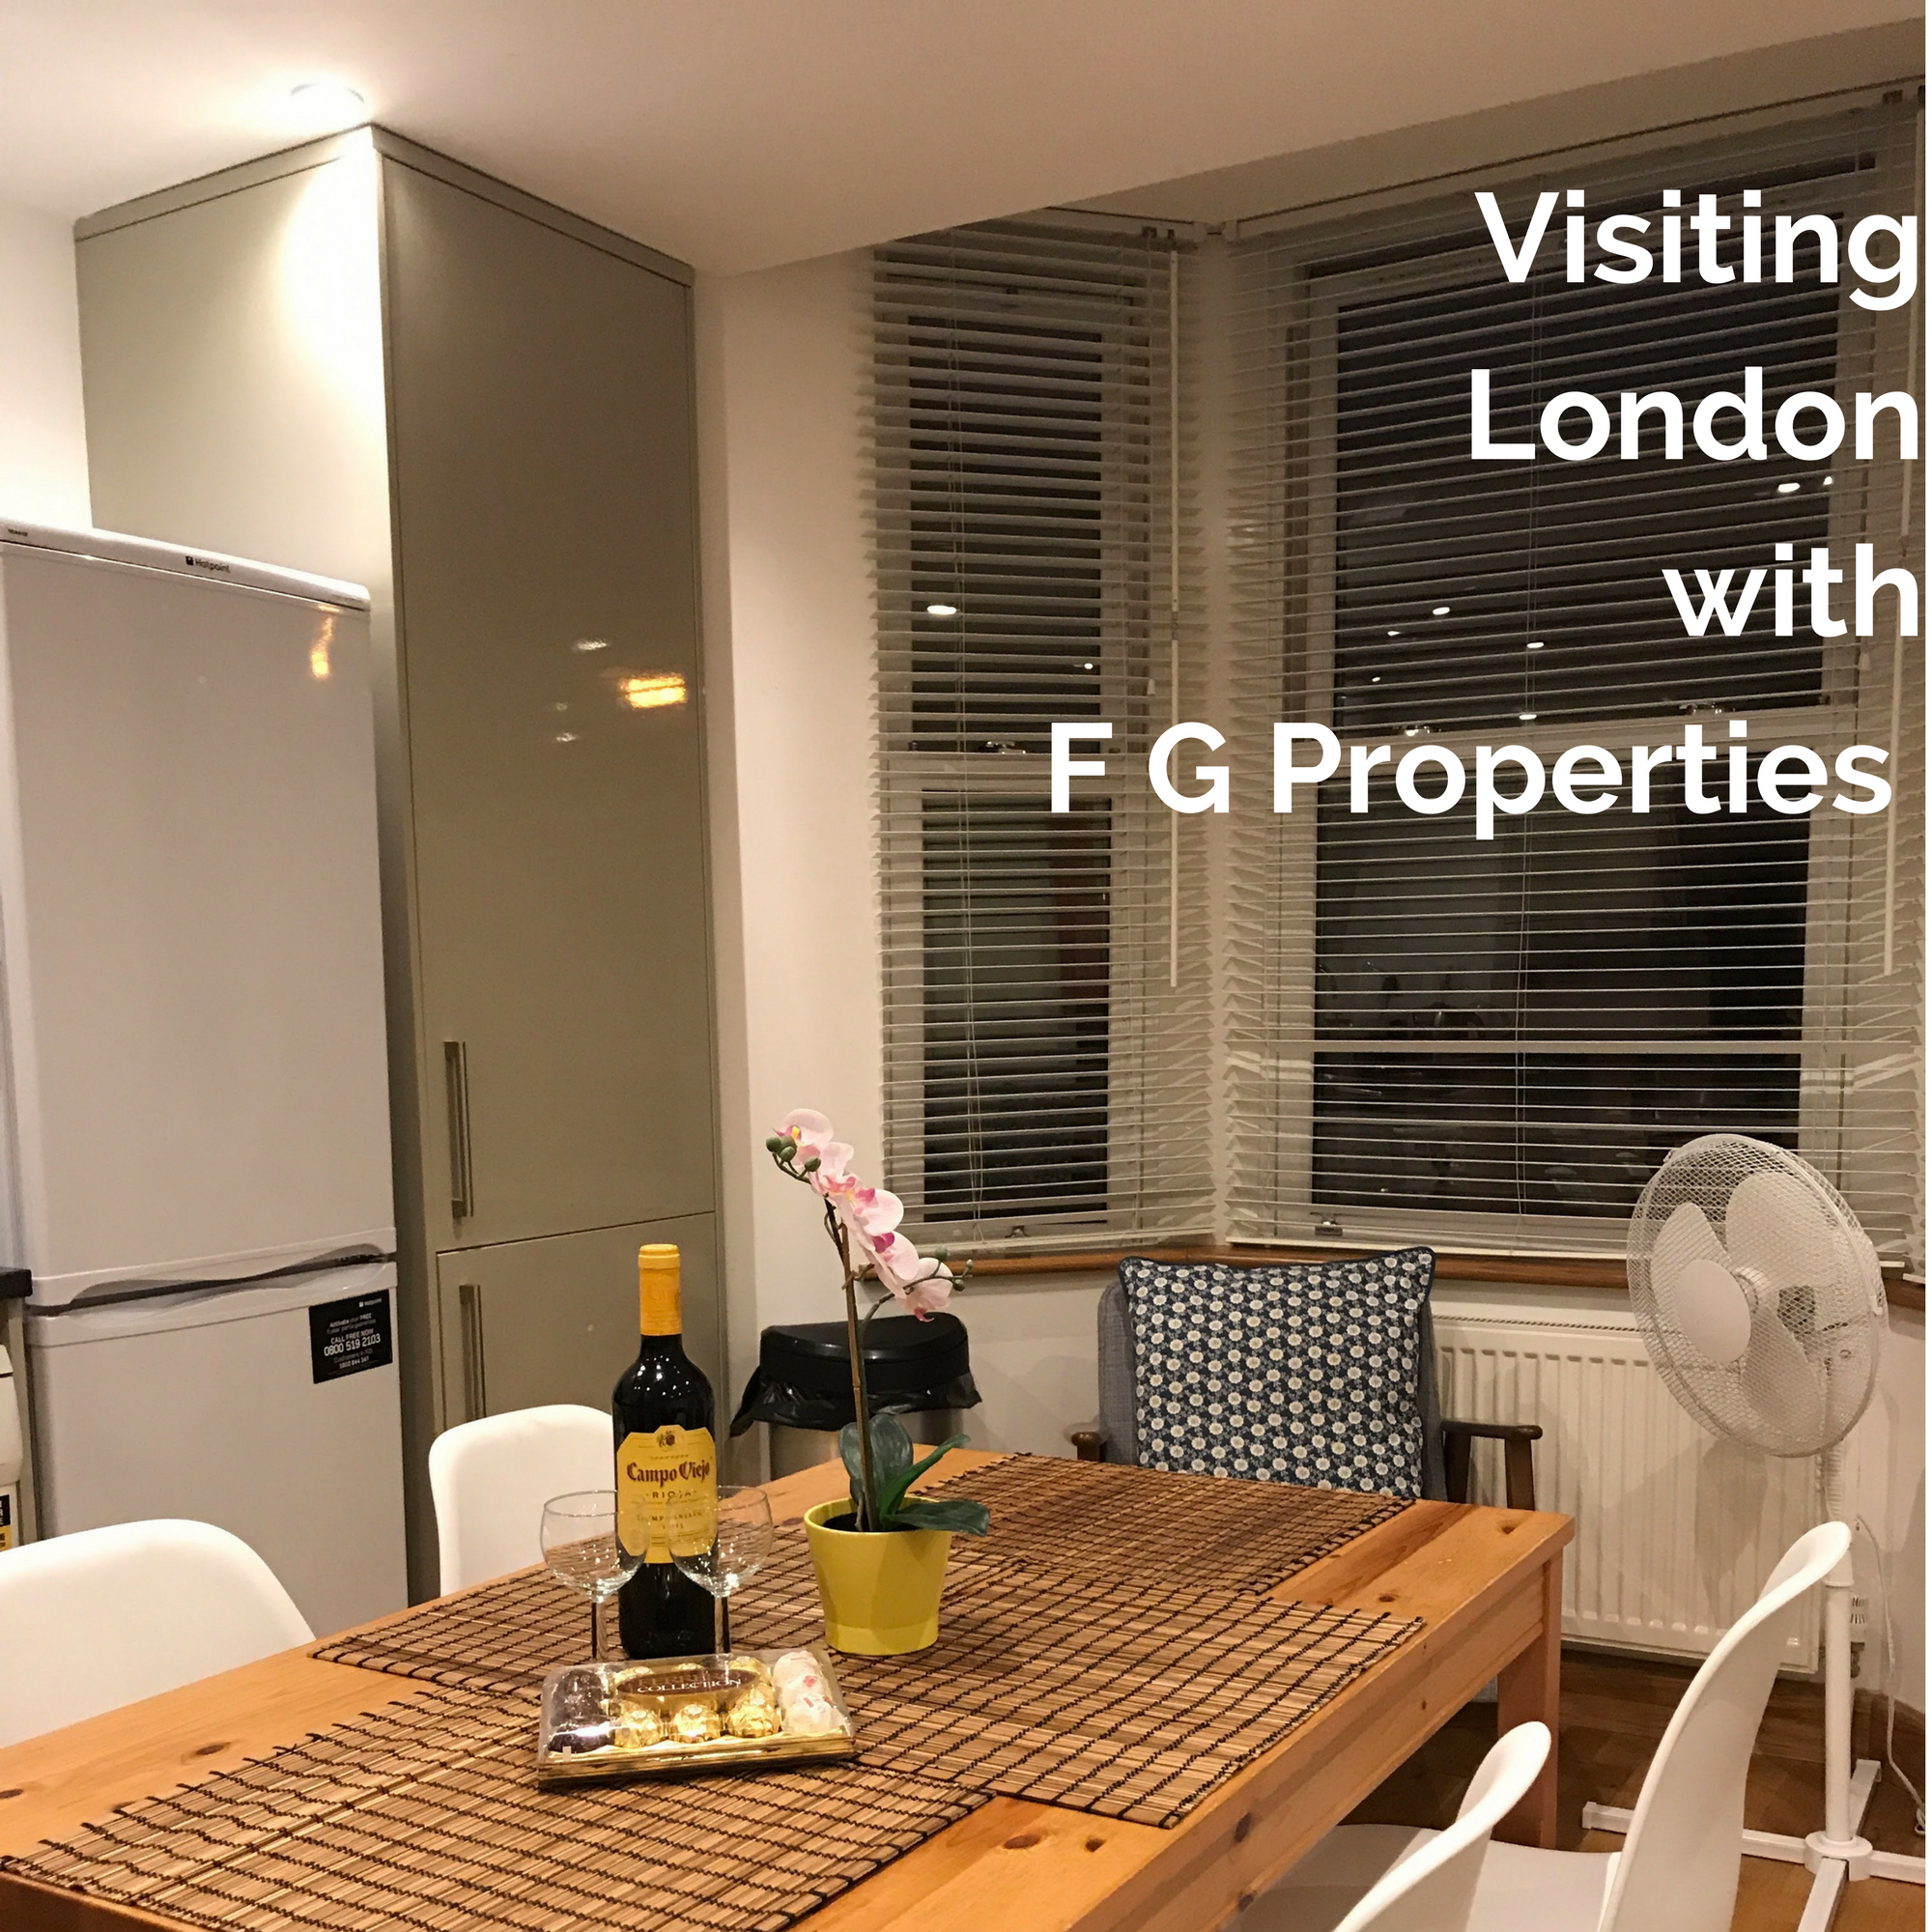 Visiting London with F G Properties